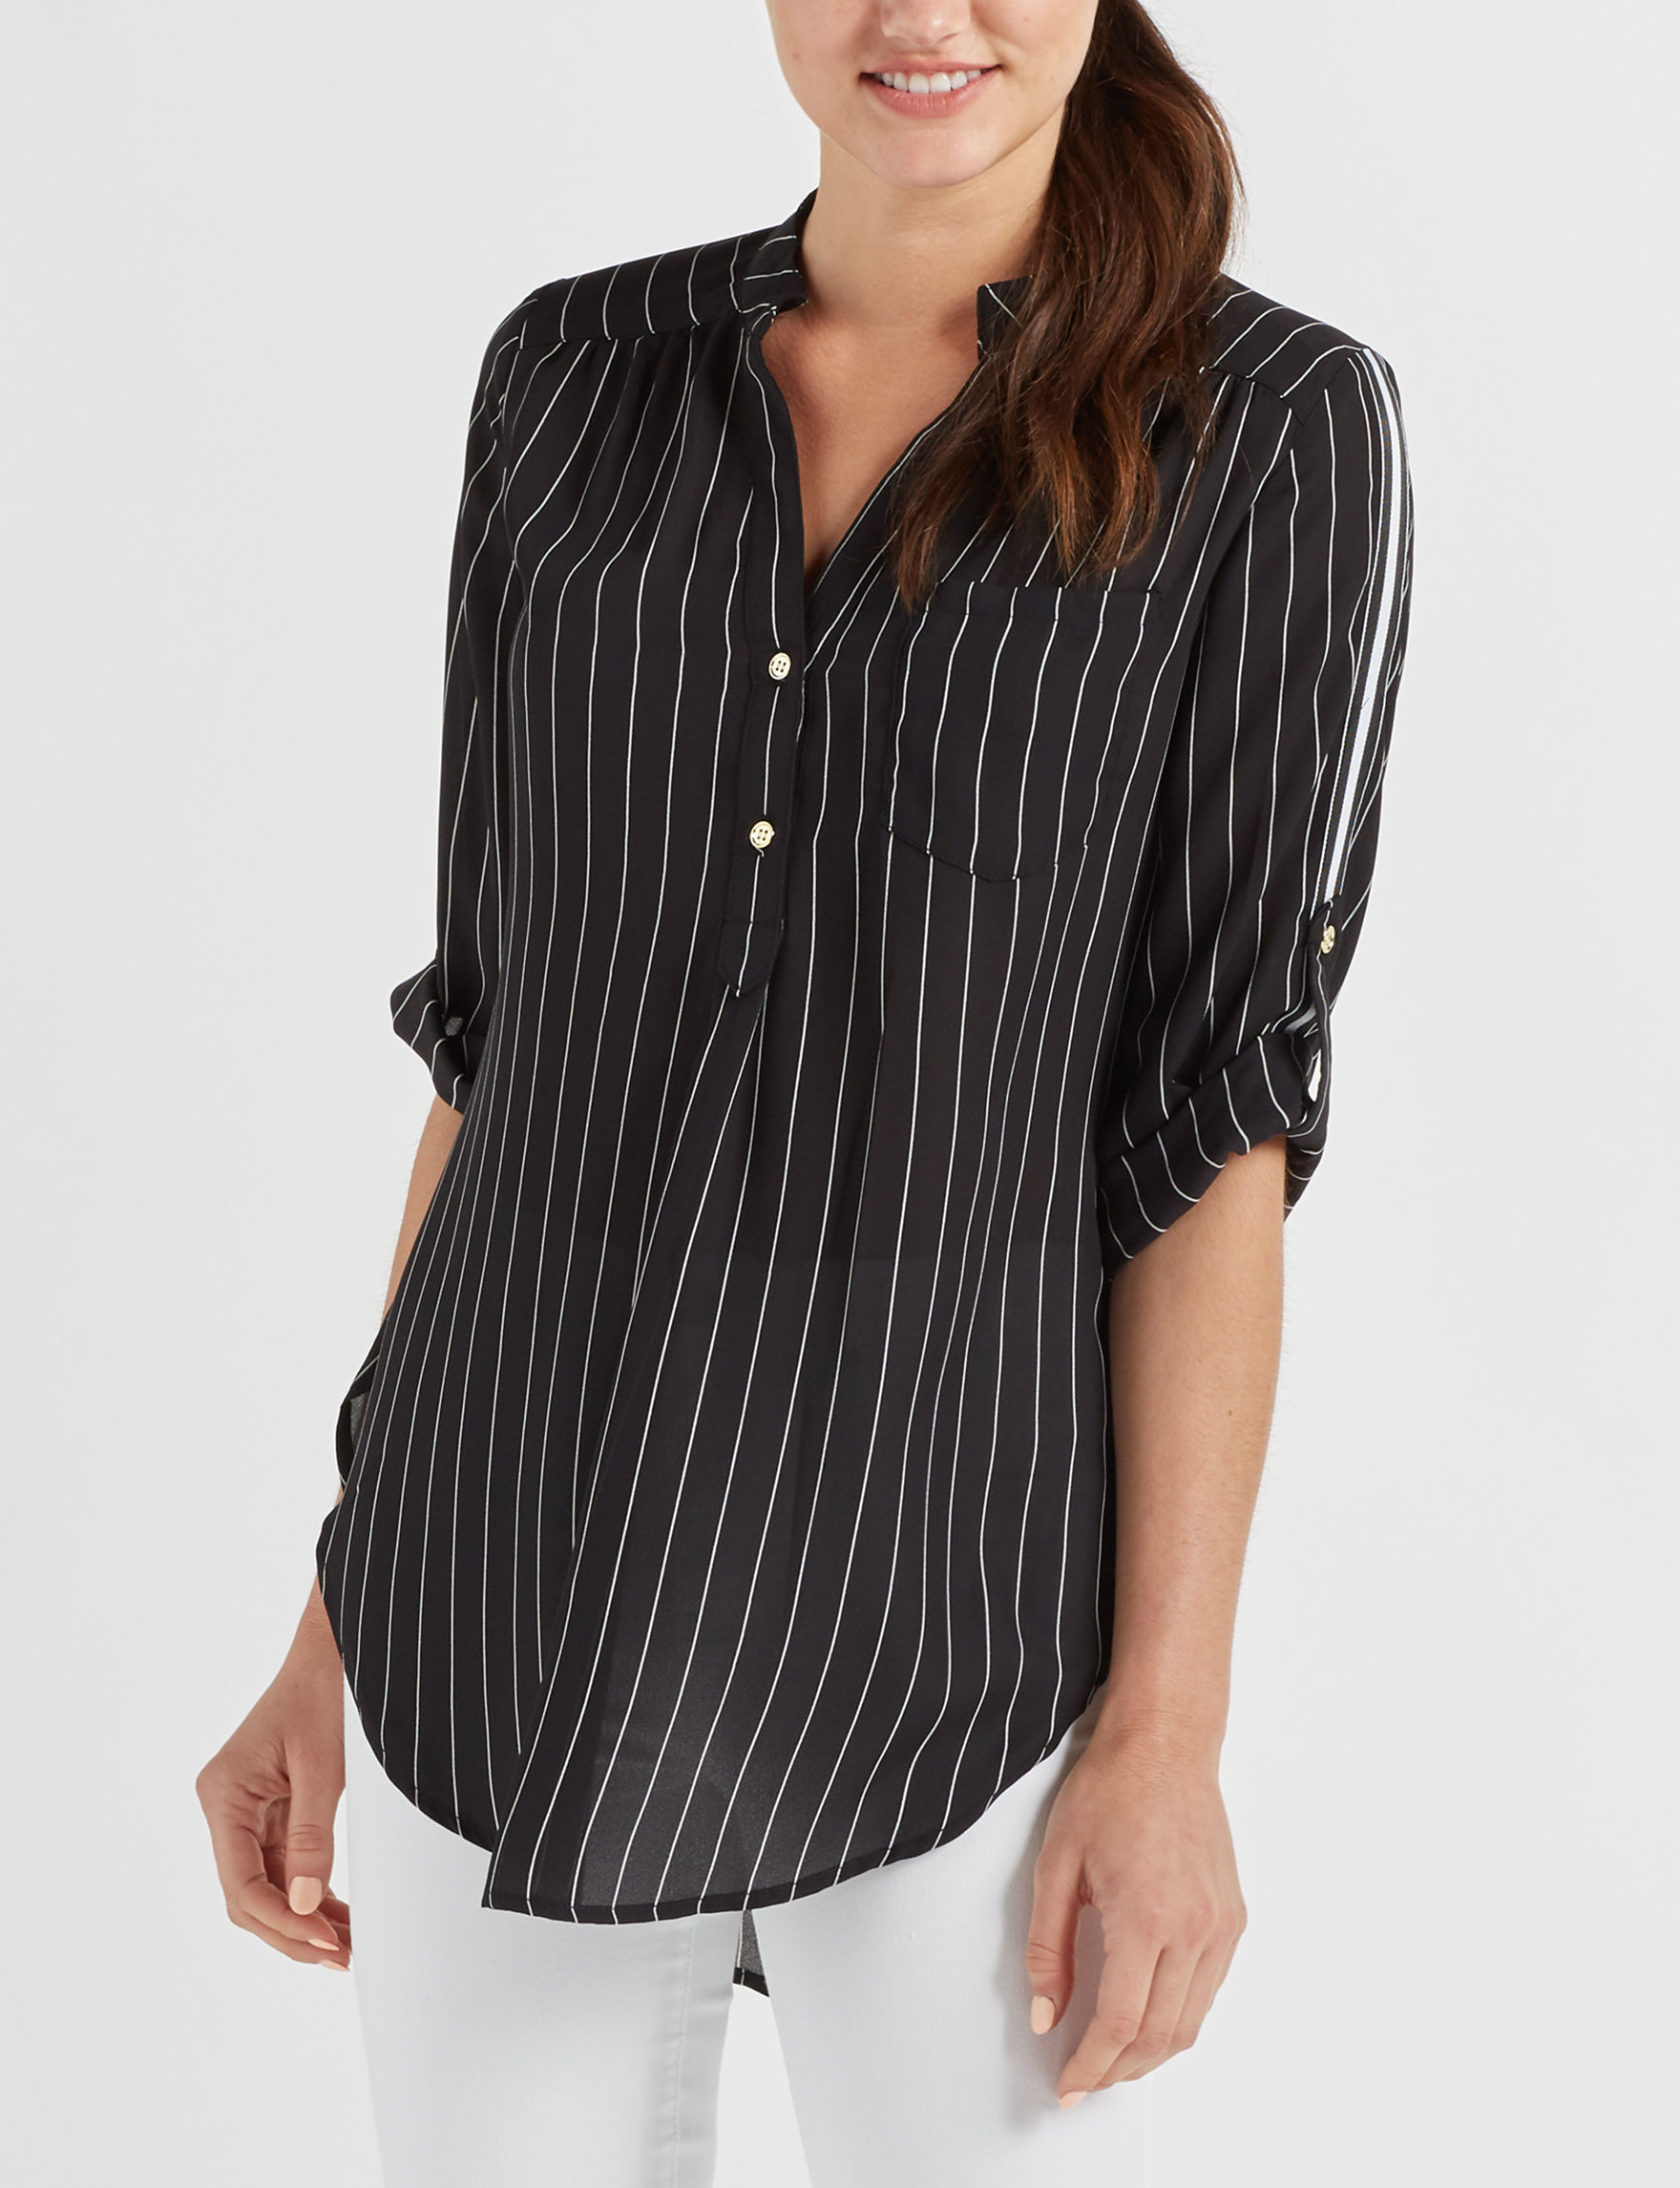 Wishful Park Black Shirts & Blouses